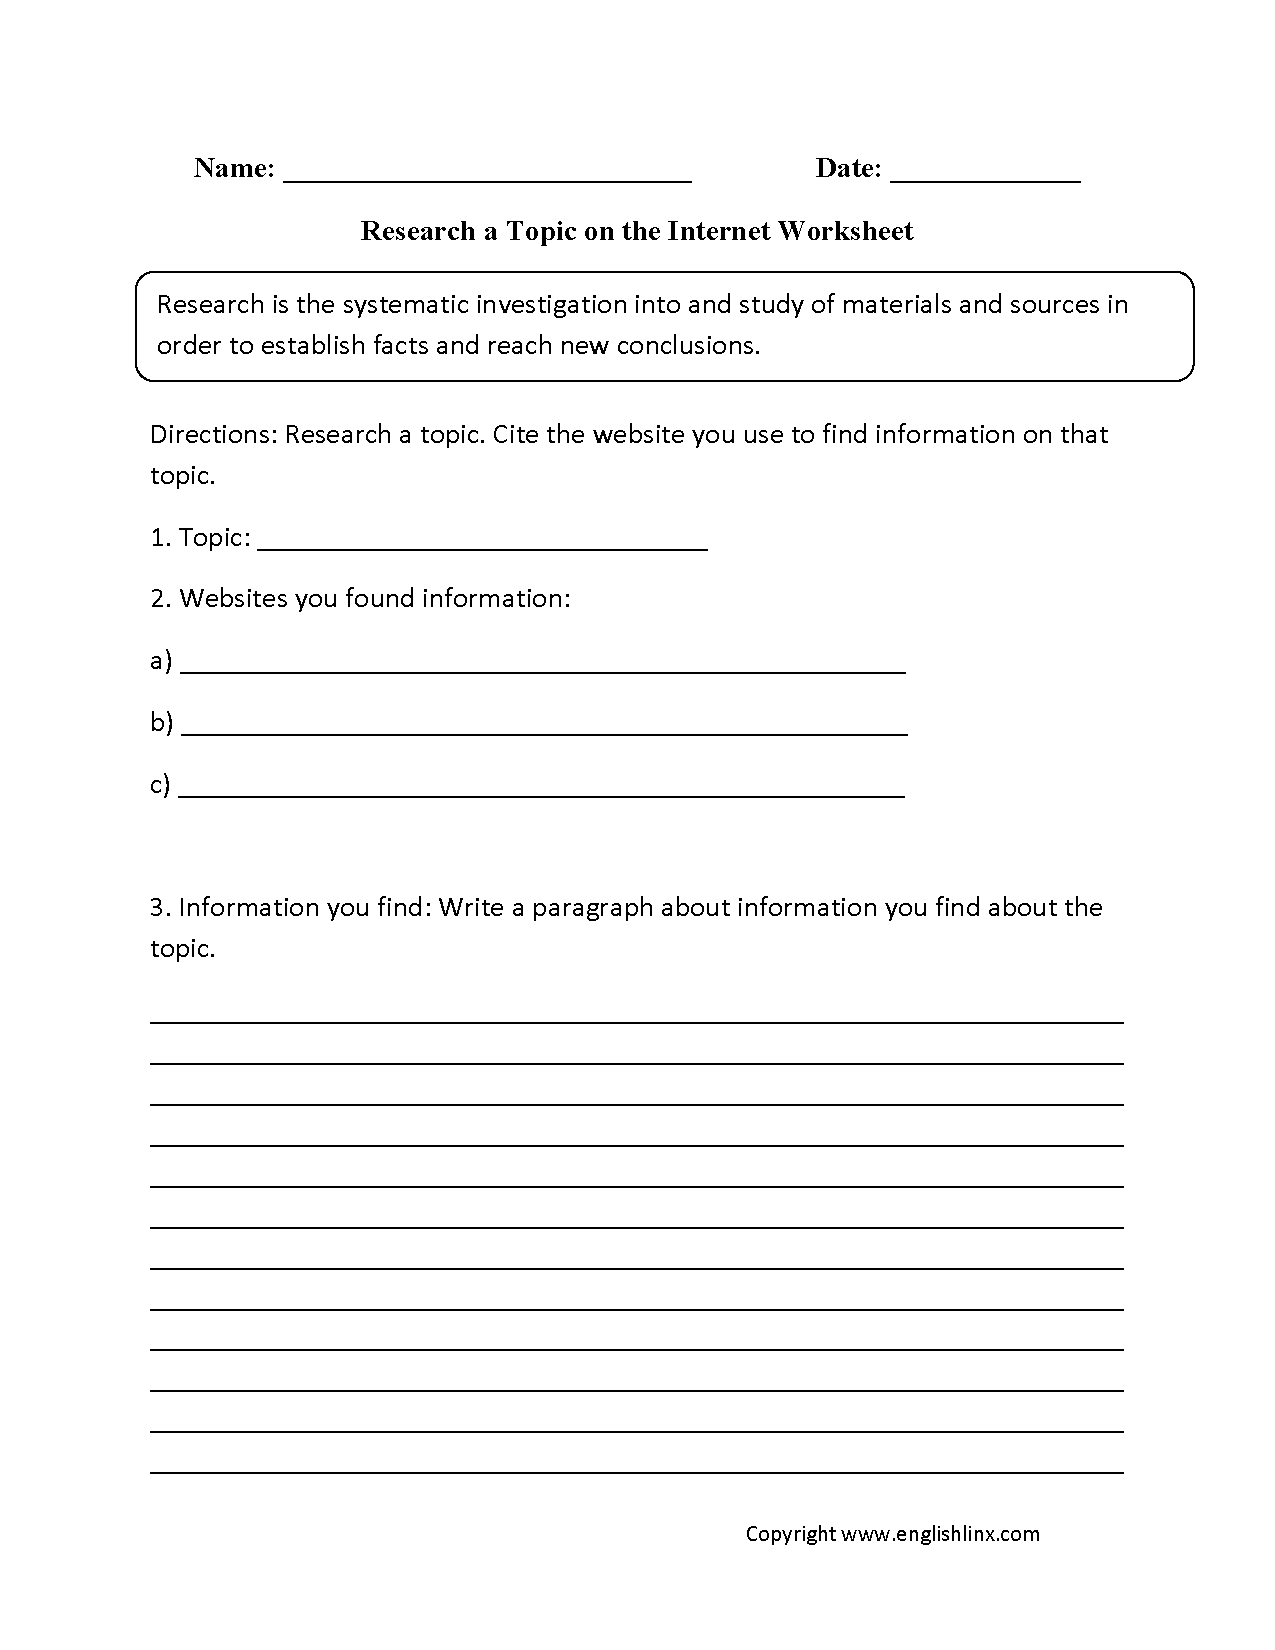 Aldiablosus  Outstanding Englishlinxcom  Research Worksheets With Luxury On The Internet Worksheet With Delightful Grade  Place Value Worksheets Also Mathematics Free Worksheets In Addition Free Picture Story Sequencing Worksheets And Adjectives Worksheet For Grade  As Well As Un And Dis Prefix Worksheets Additionally Abc Dotted Line Worksheet From Englishlinxcom With Aldiablosus  Luxury Englishlinxcom  Research Worksheets With Delightful On The Internet Worksheet And Outstanding Grade  Place Value Worksheets Also Mathematics Free Worksheets In Addition Free Picture Story Sequencing Worksheets From Englishlinxcom